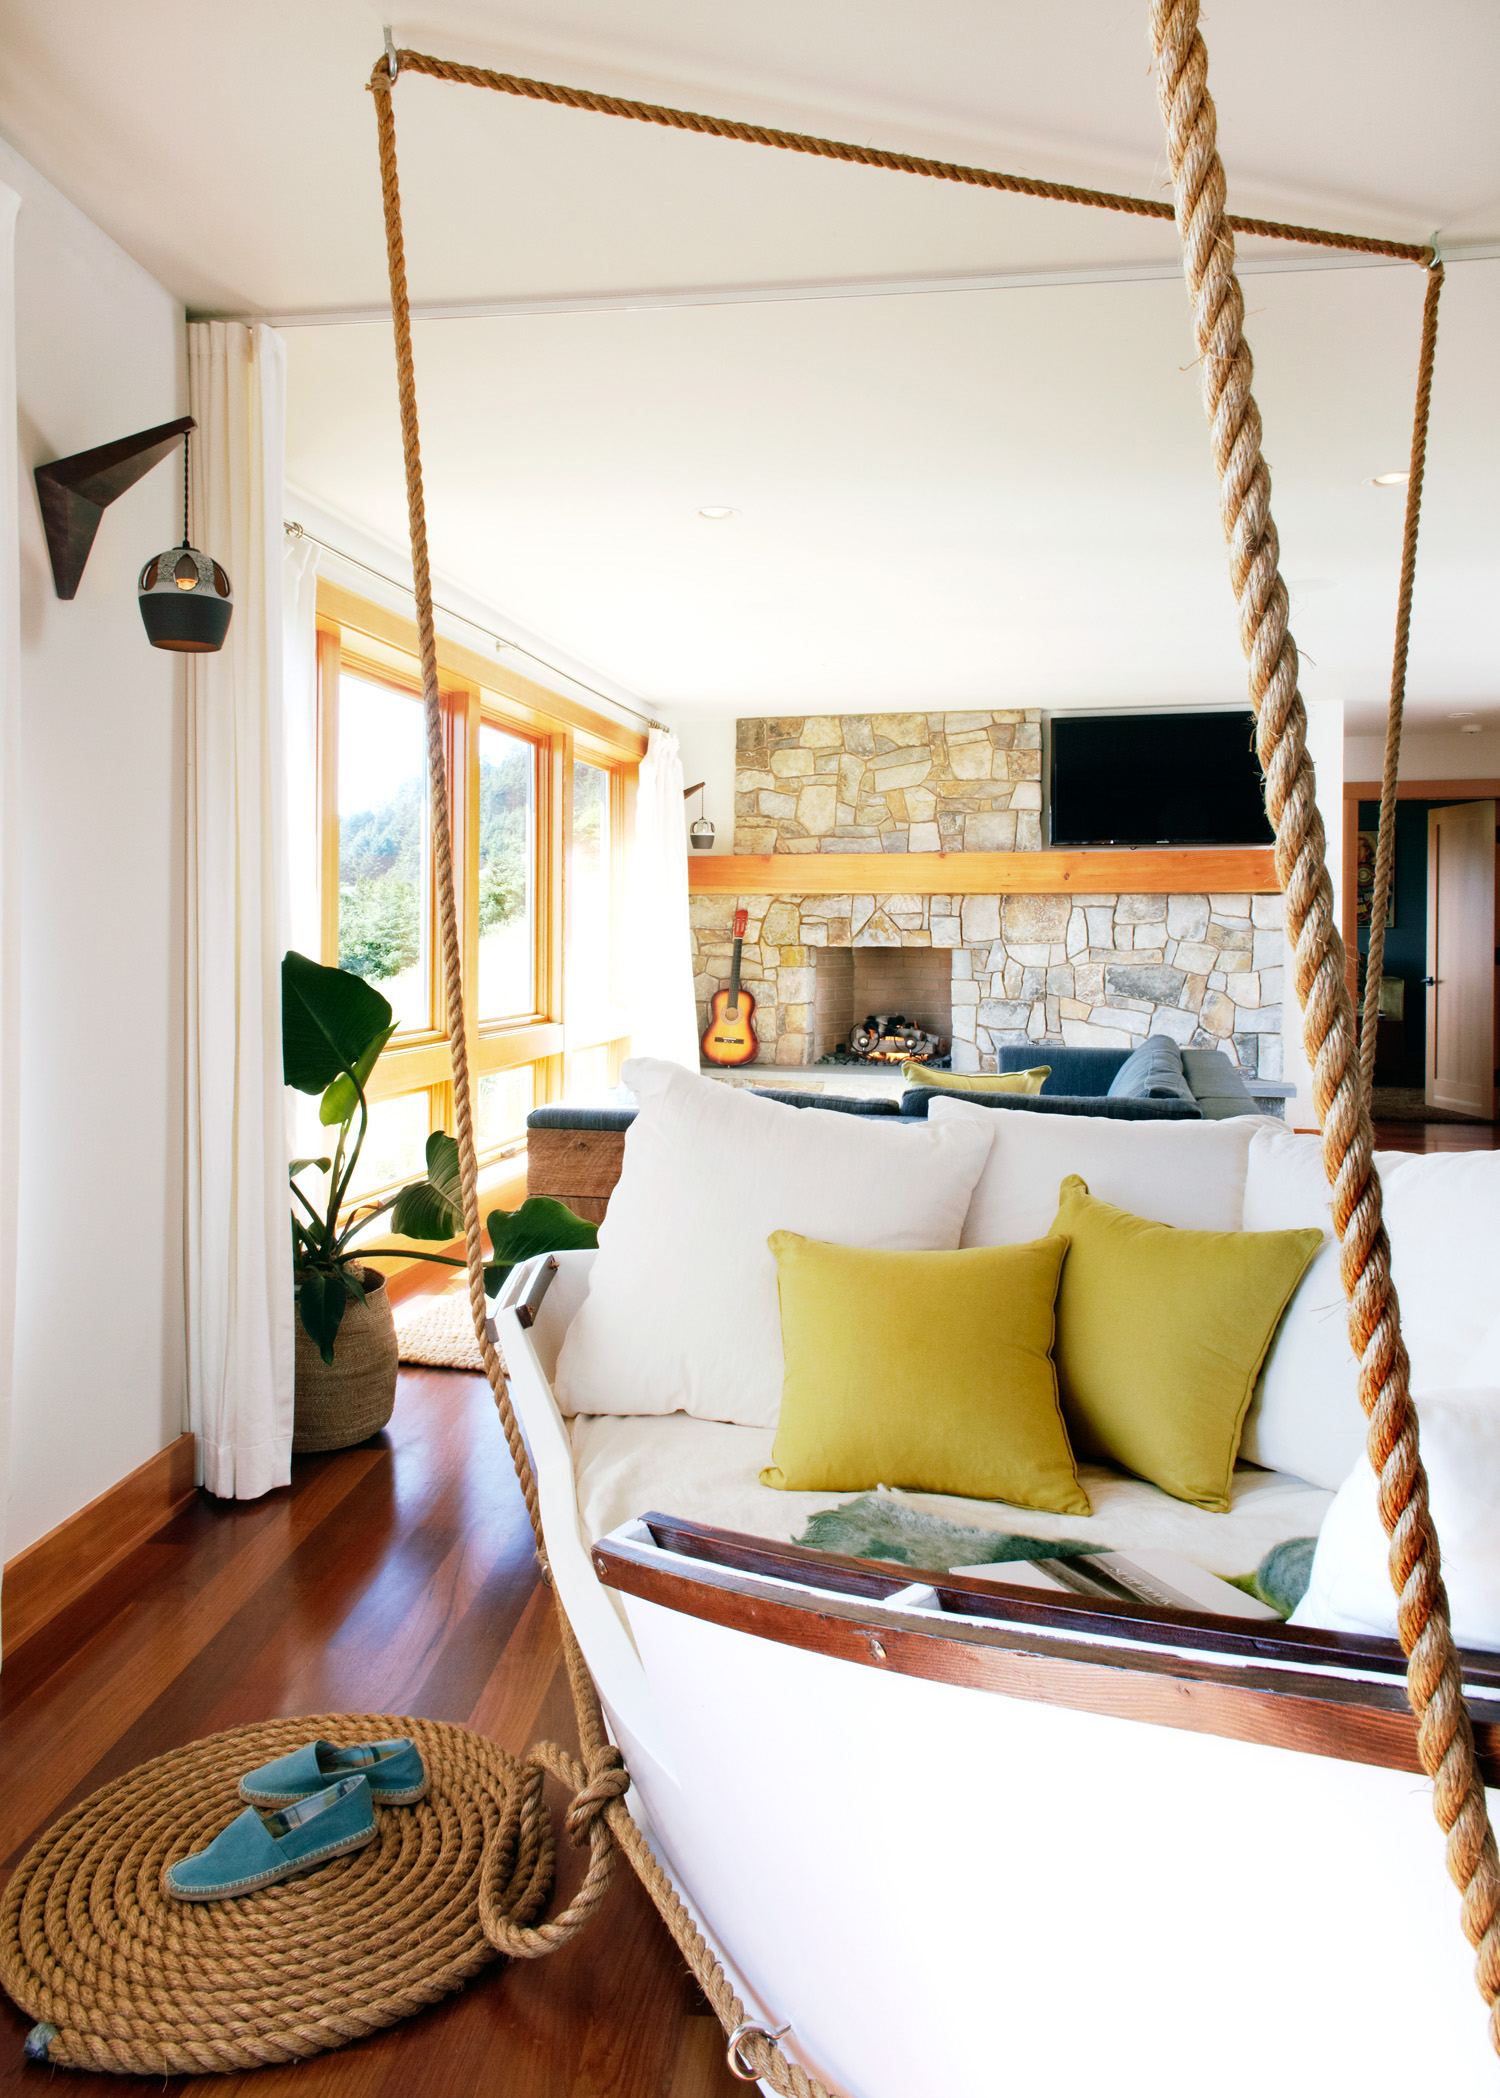 Get boho chic style with these globally inspired looks - Beach home decor ideas ...